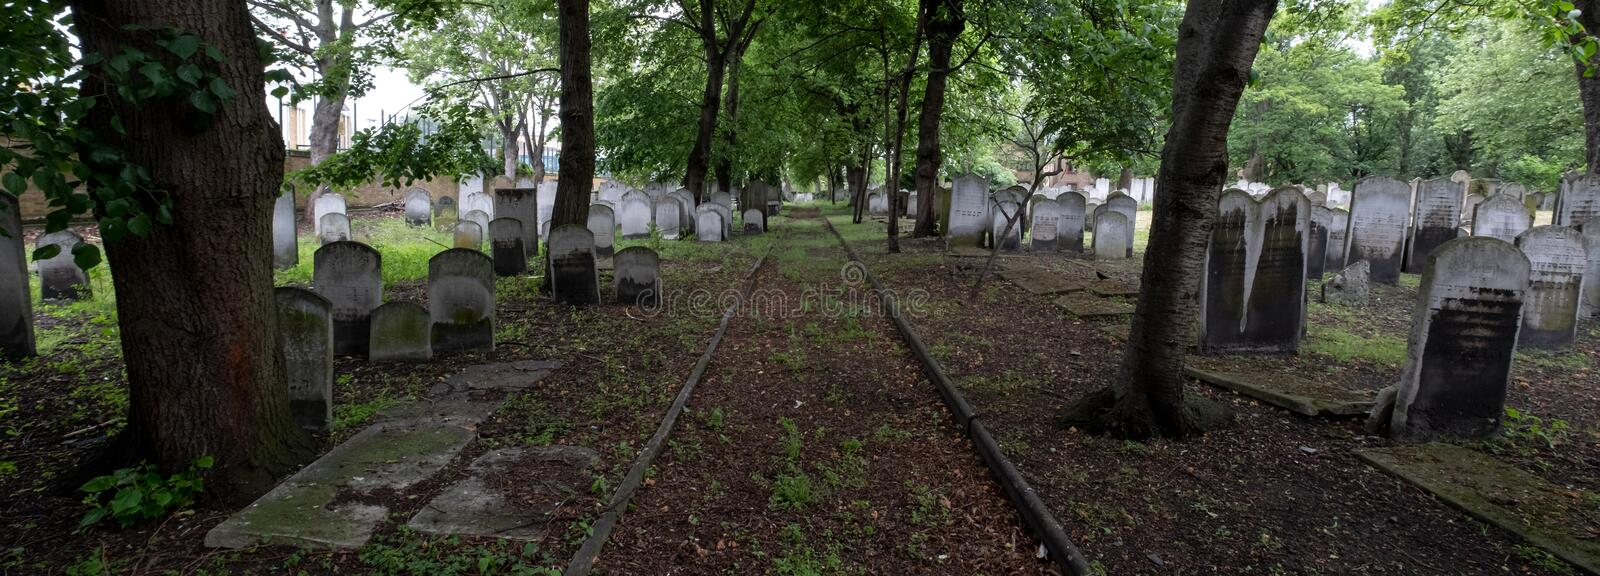 Panoramic photo of tombstones at the historic Jewish cemetery at Brady Street, Whitechapel, East London. royalty free stock images